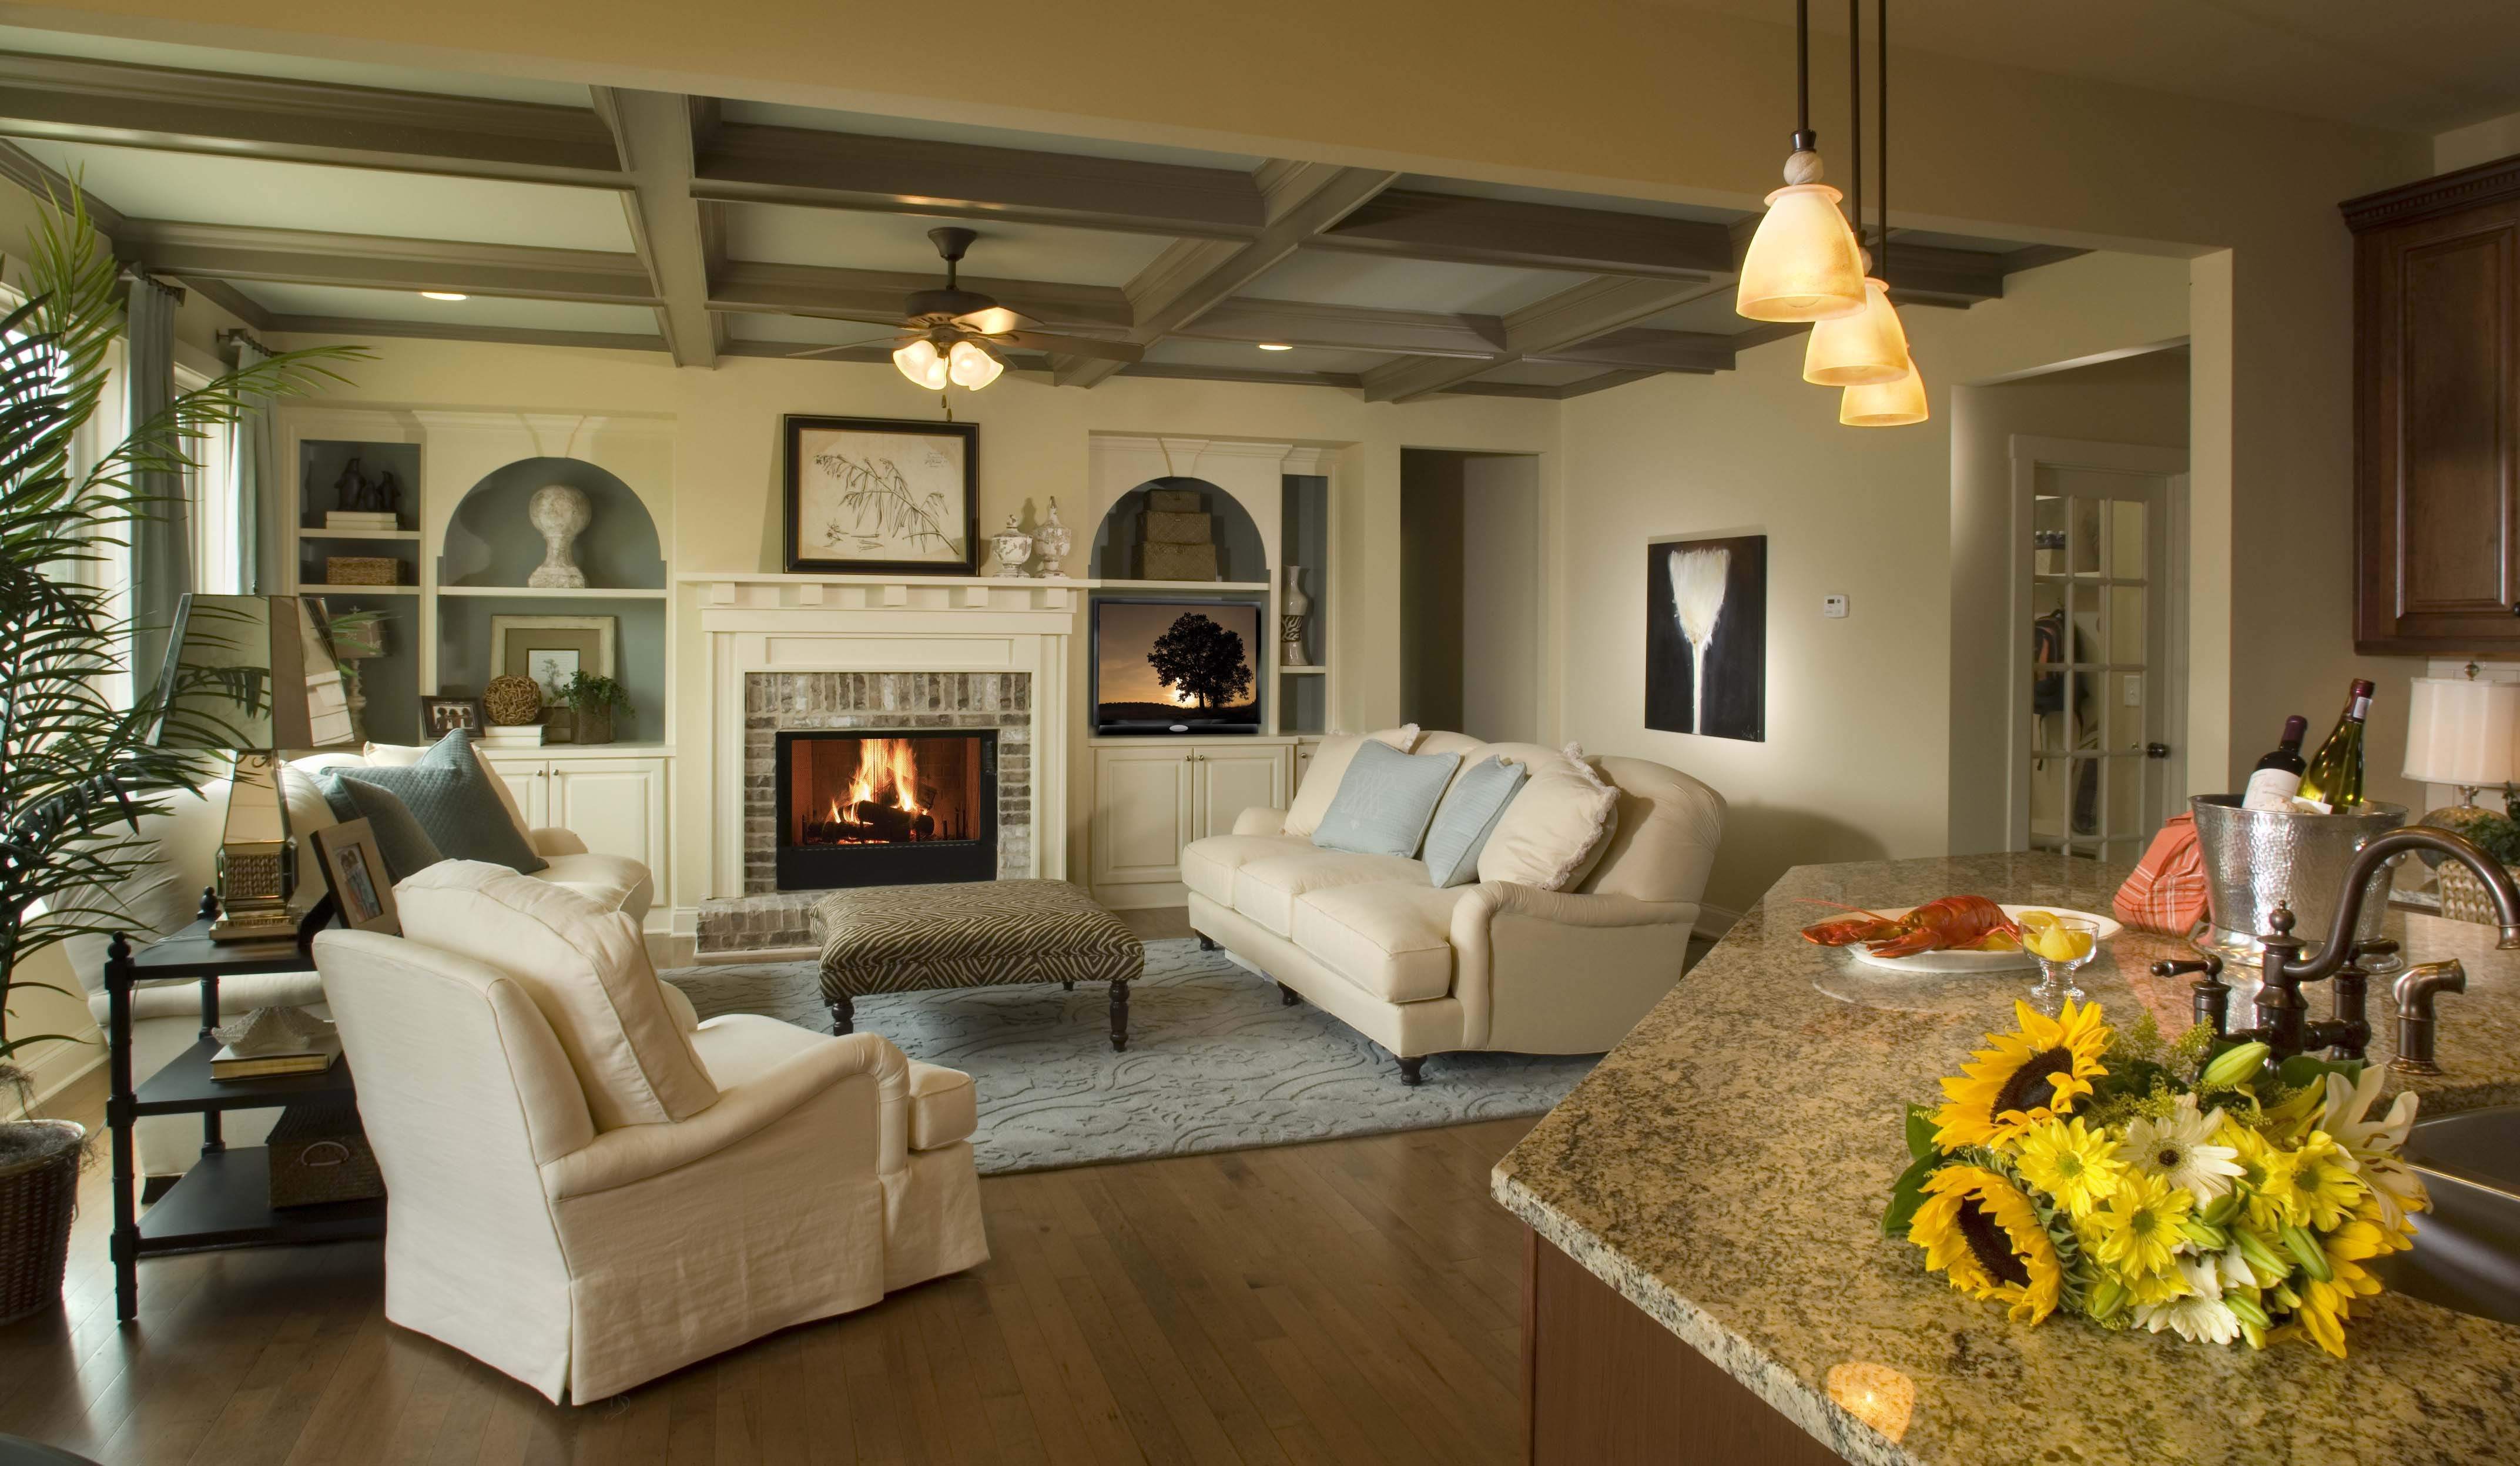 17 Best images about Living Room on Pinterest   Home design  Paint colors  and Modern living room designs. 17 Best images about Living Room on Pinterest   Home design  Paint